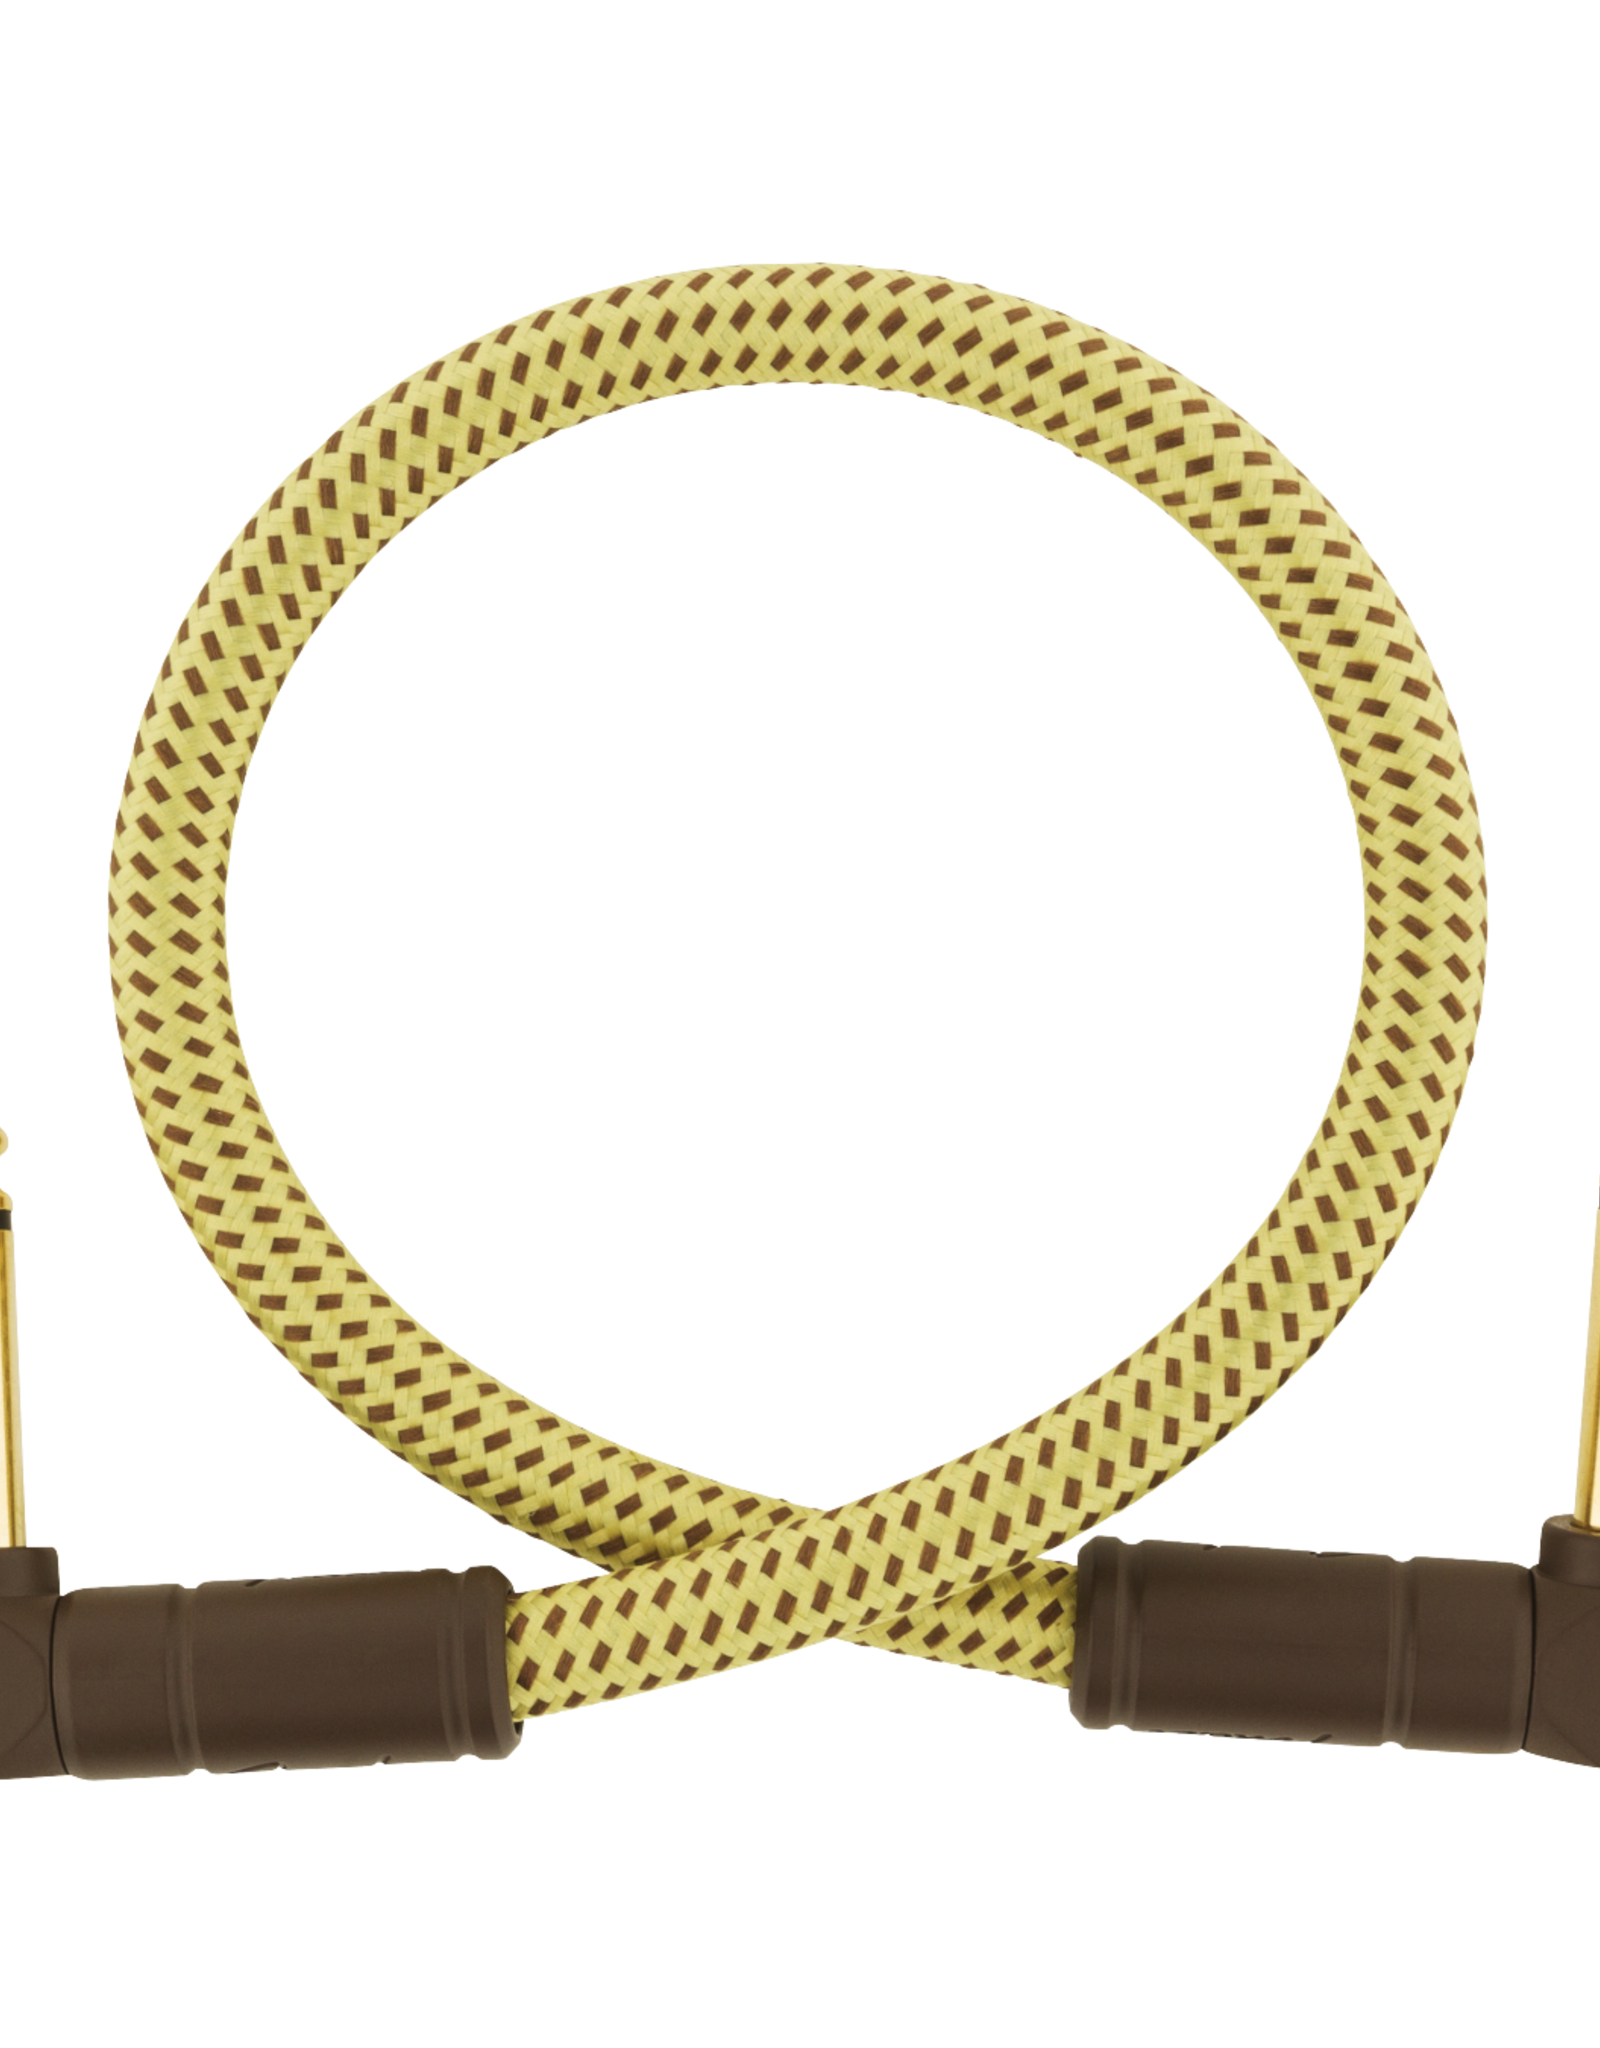 Fender Fender Deluxe Series Instrument Cable, Angle/Angle, 1', Tweed